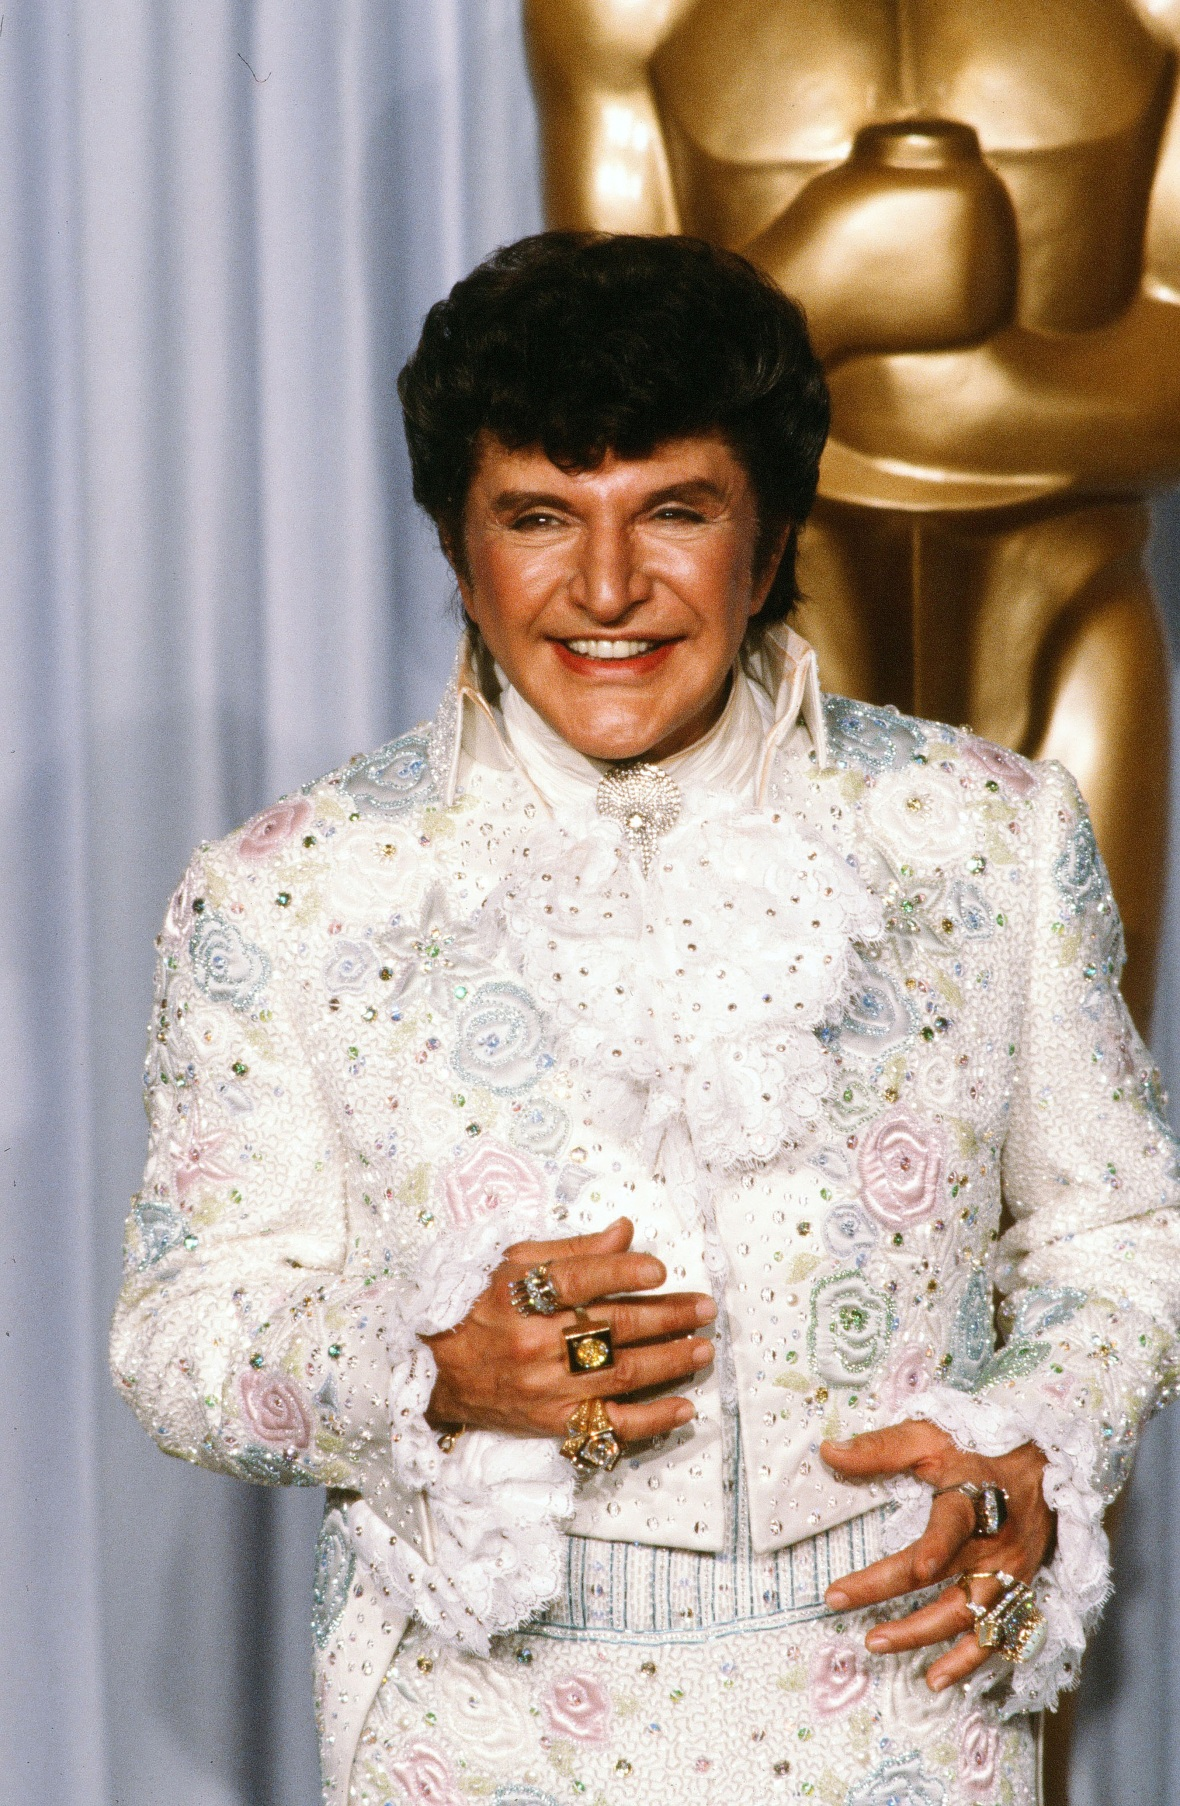 liberace getty images